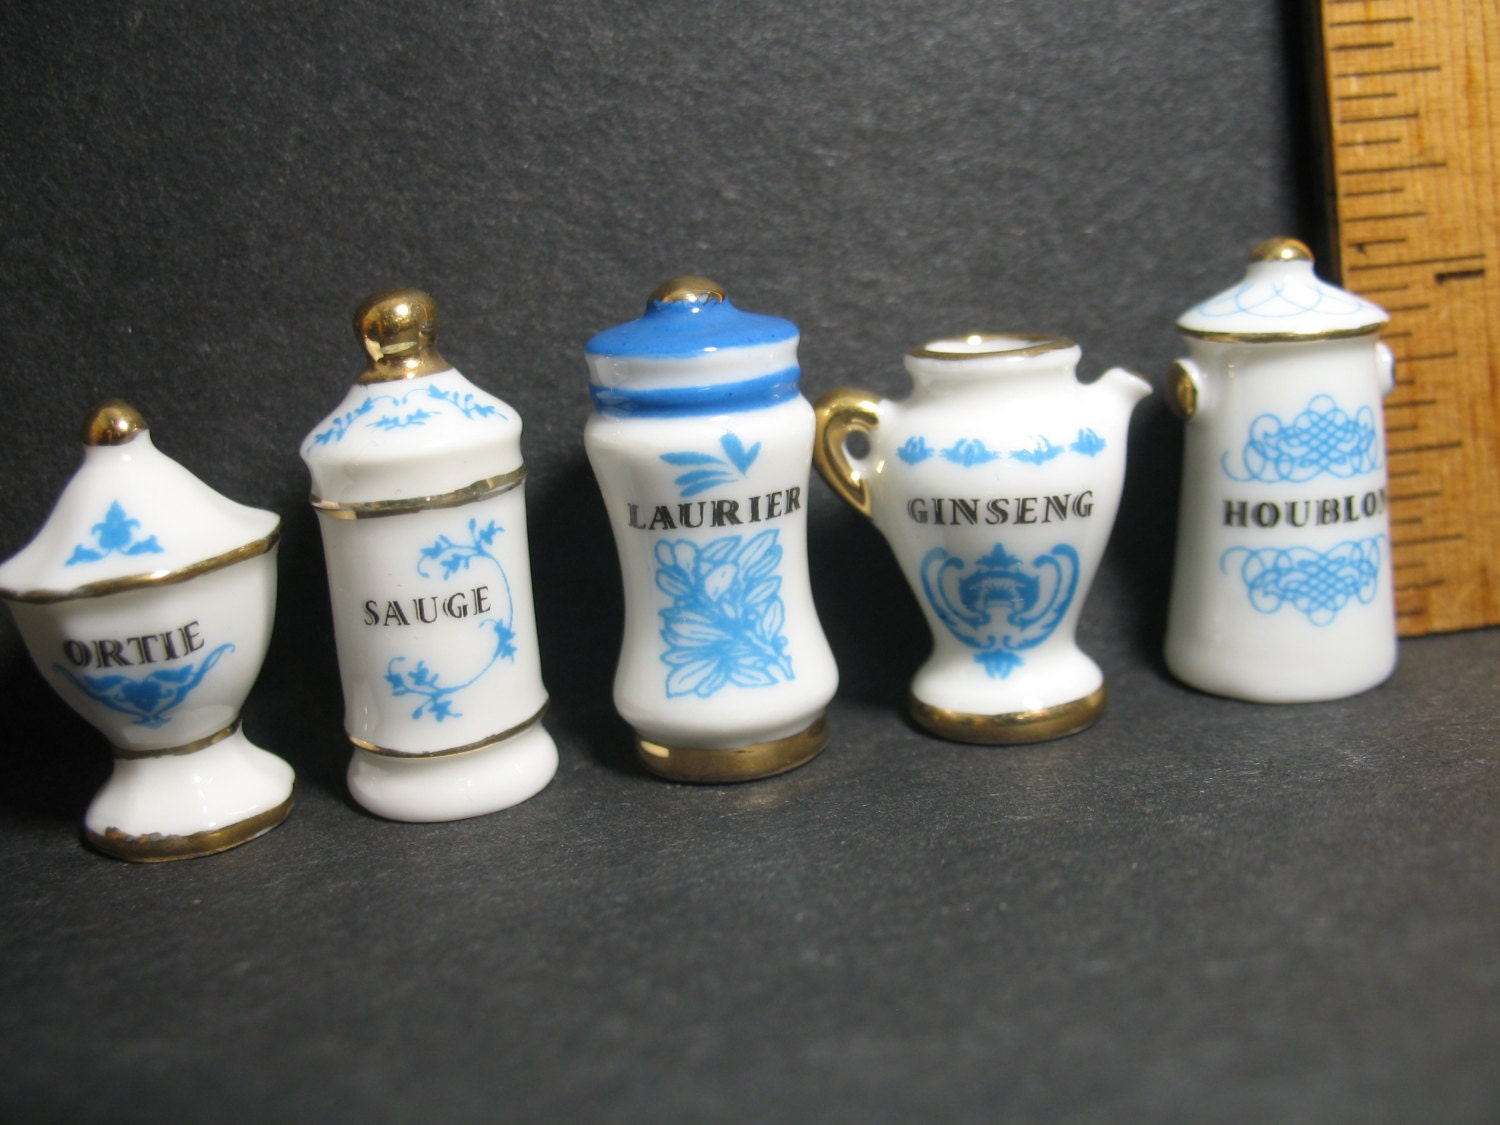 French Canisters Kitchen Spice Canisters Kitchen Apothecary Jars Containers Blue White